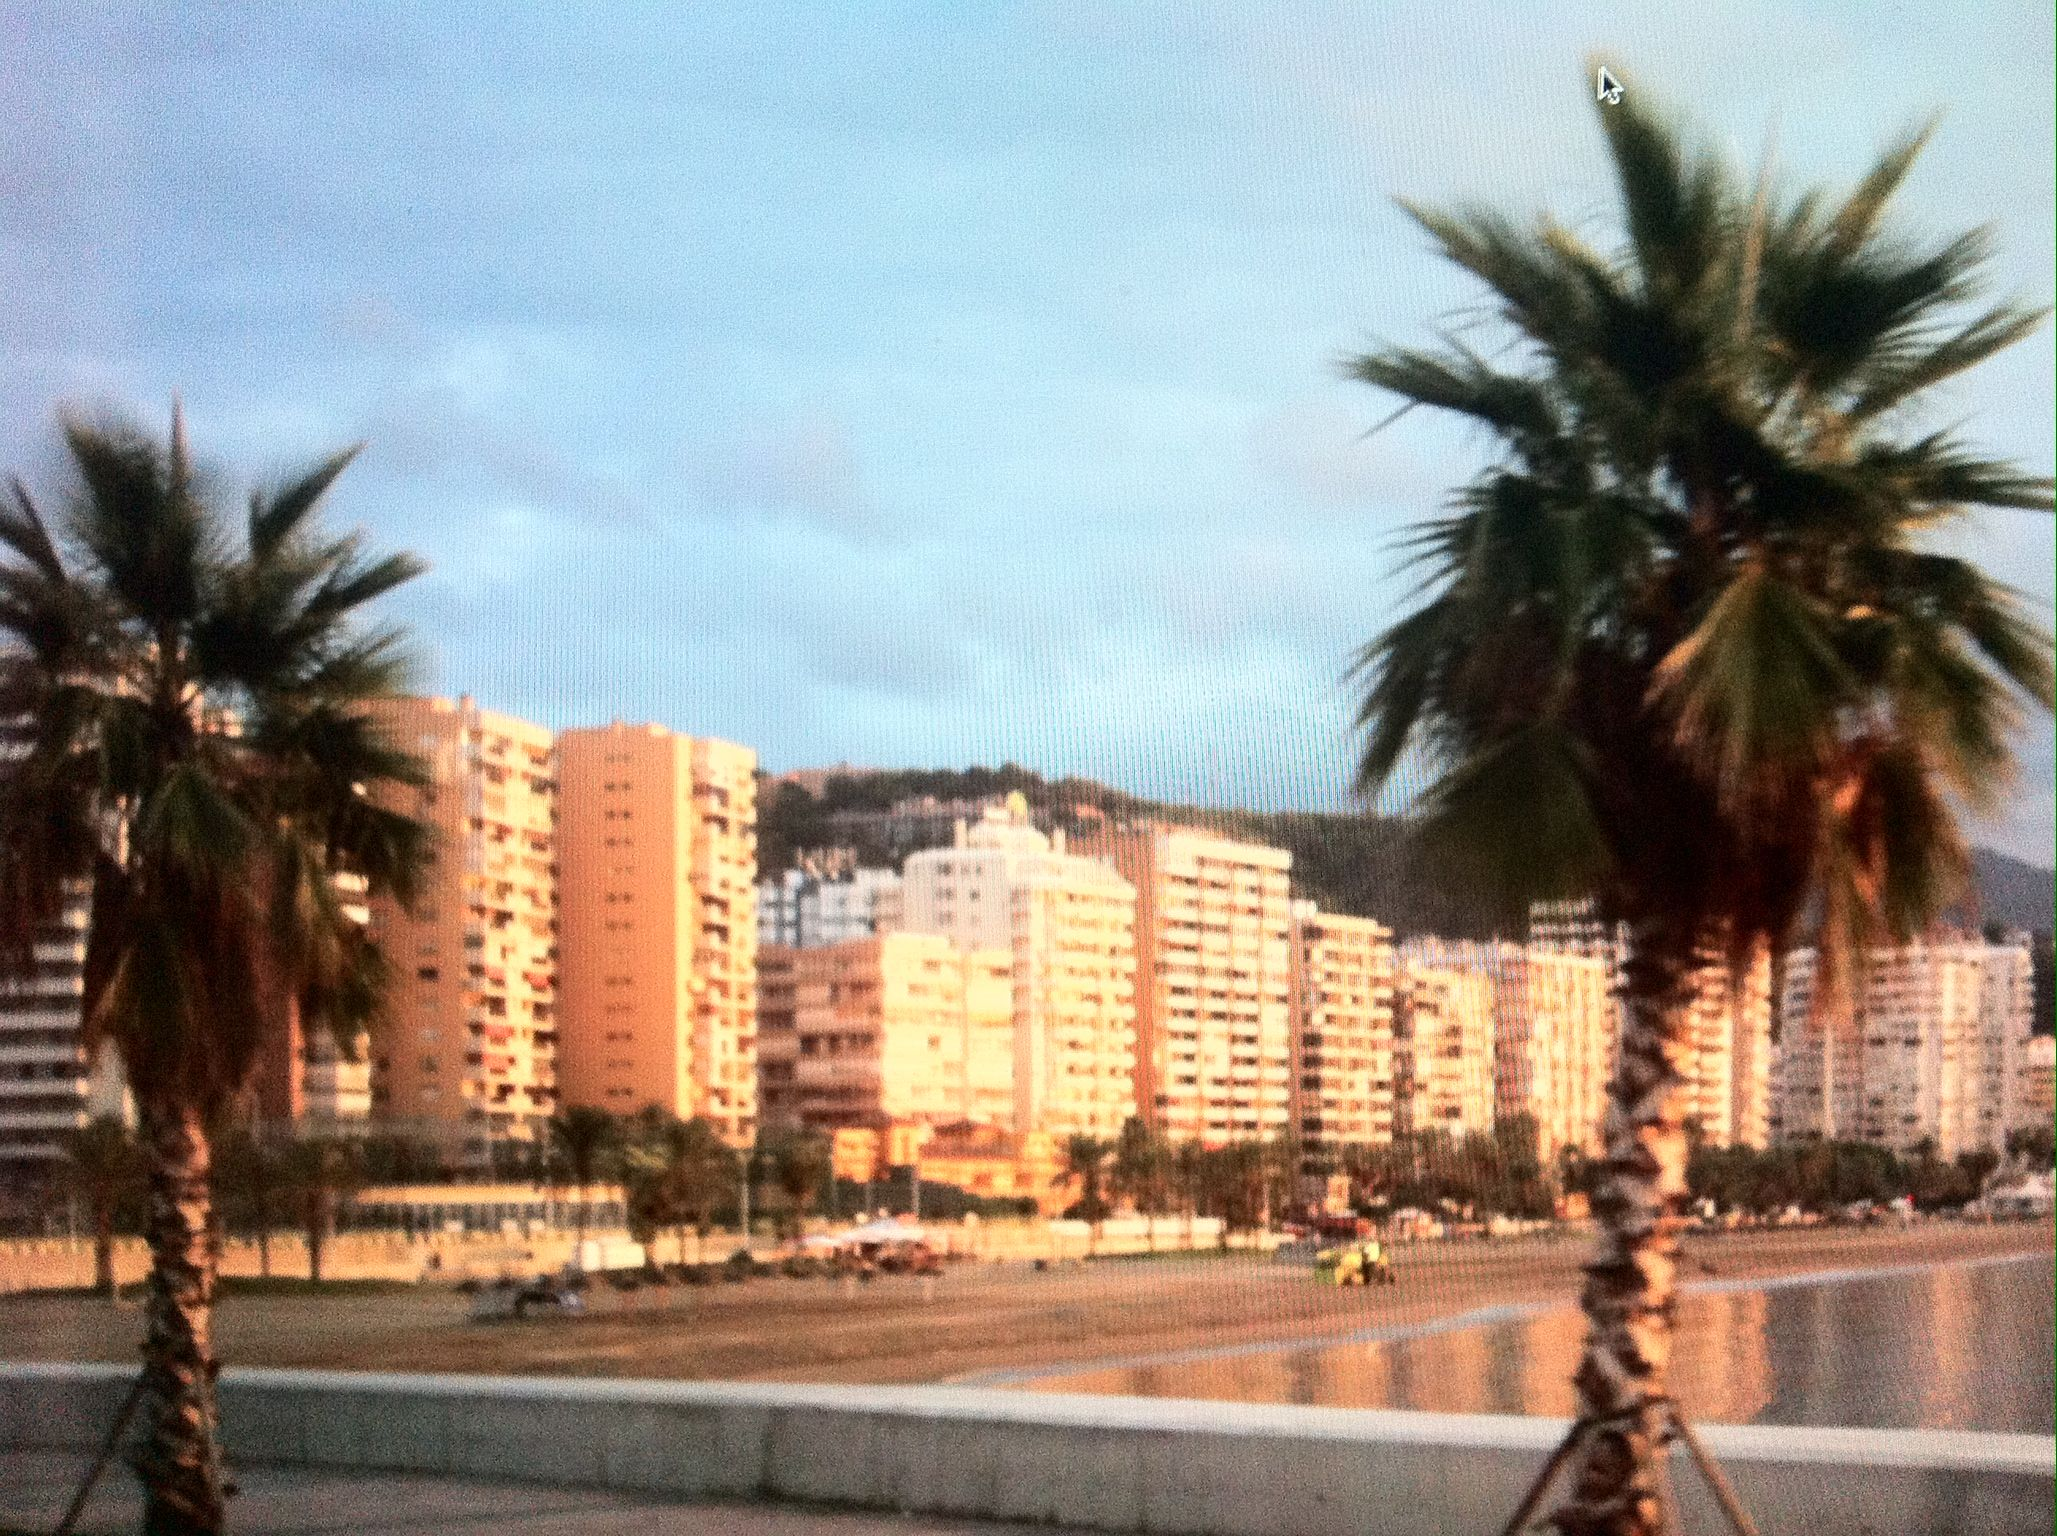 Malaga Spain at sunrise